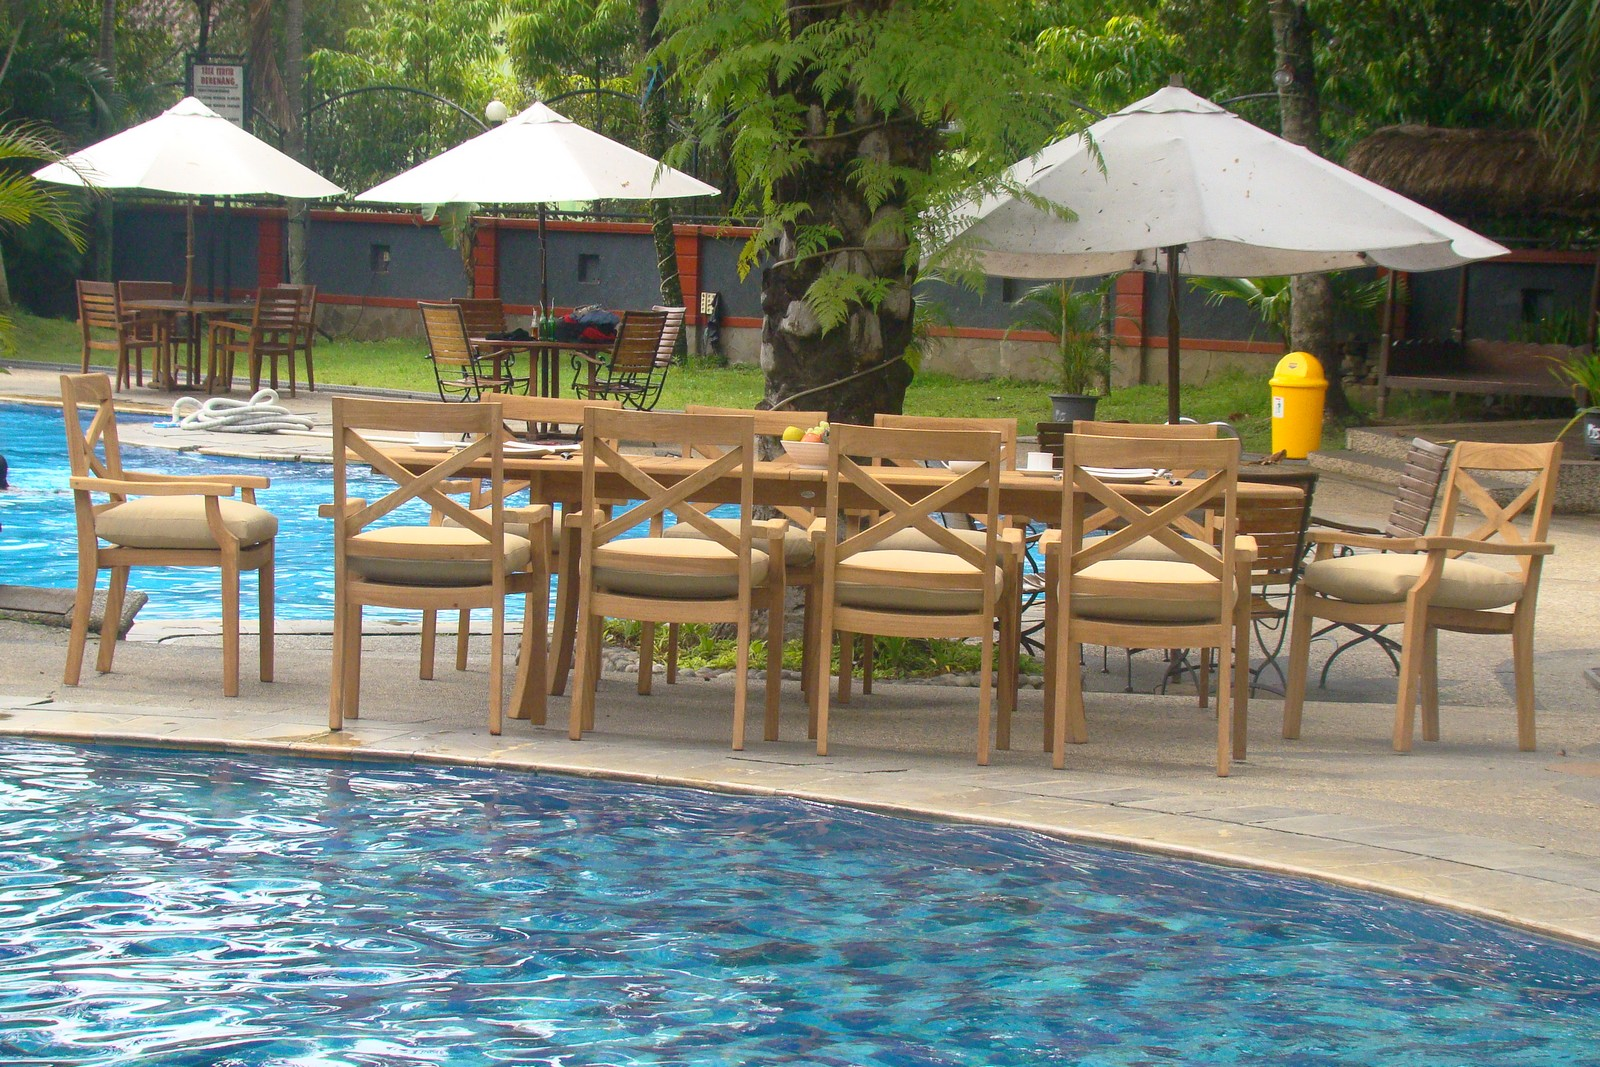 11 Pc Dining Teak Stacking Chairs Outdoor Patio Furniture Pool X3 Granada Deck Ebay